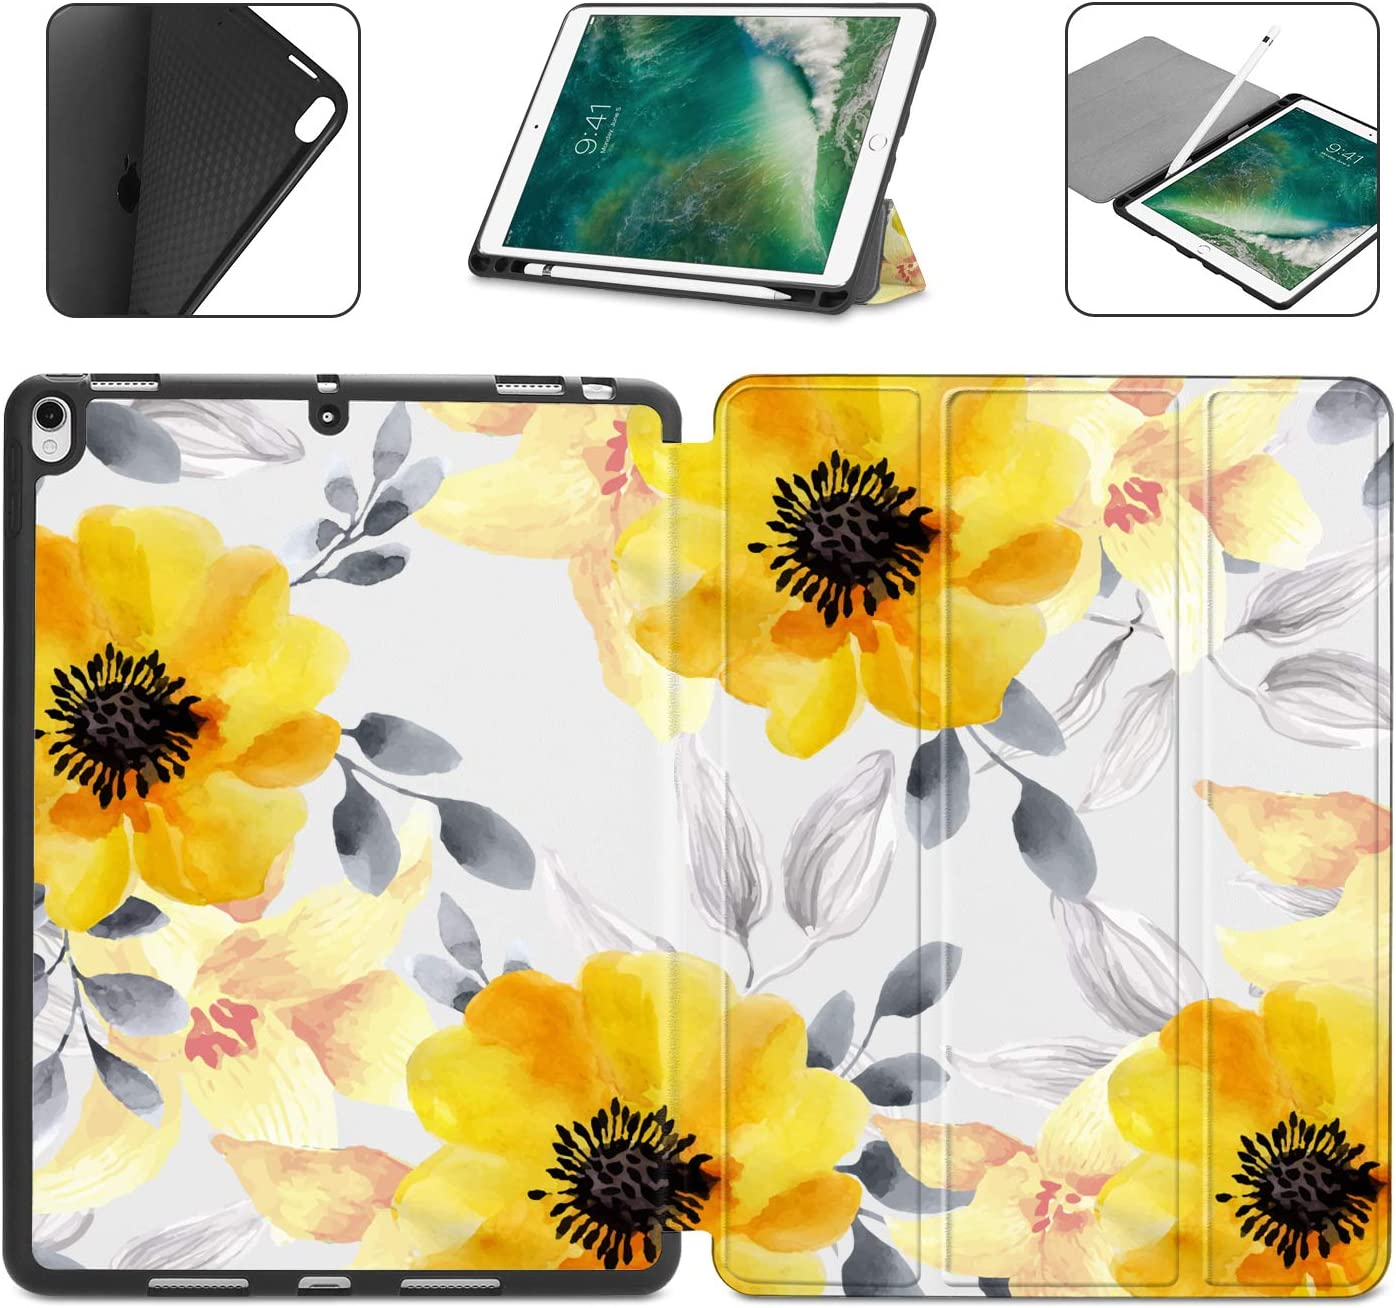 Dongke Case with Pencil Holder for iPad Pro 10.5 Case/iPad Air 3 Case 2019 (3rd Generation), Slim Shell Sunflowers Pattern Series Lightweight Soft TPU Back Smart Stand Cover (Auto Wake/Sleep)